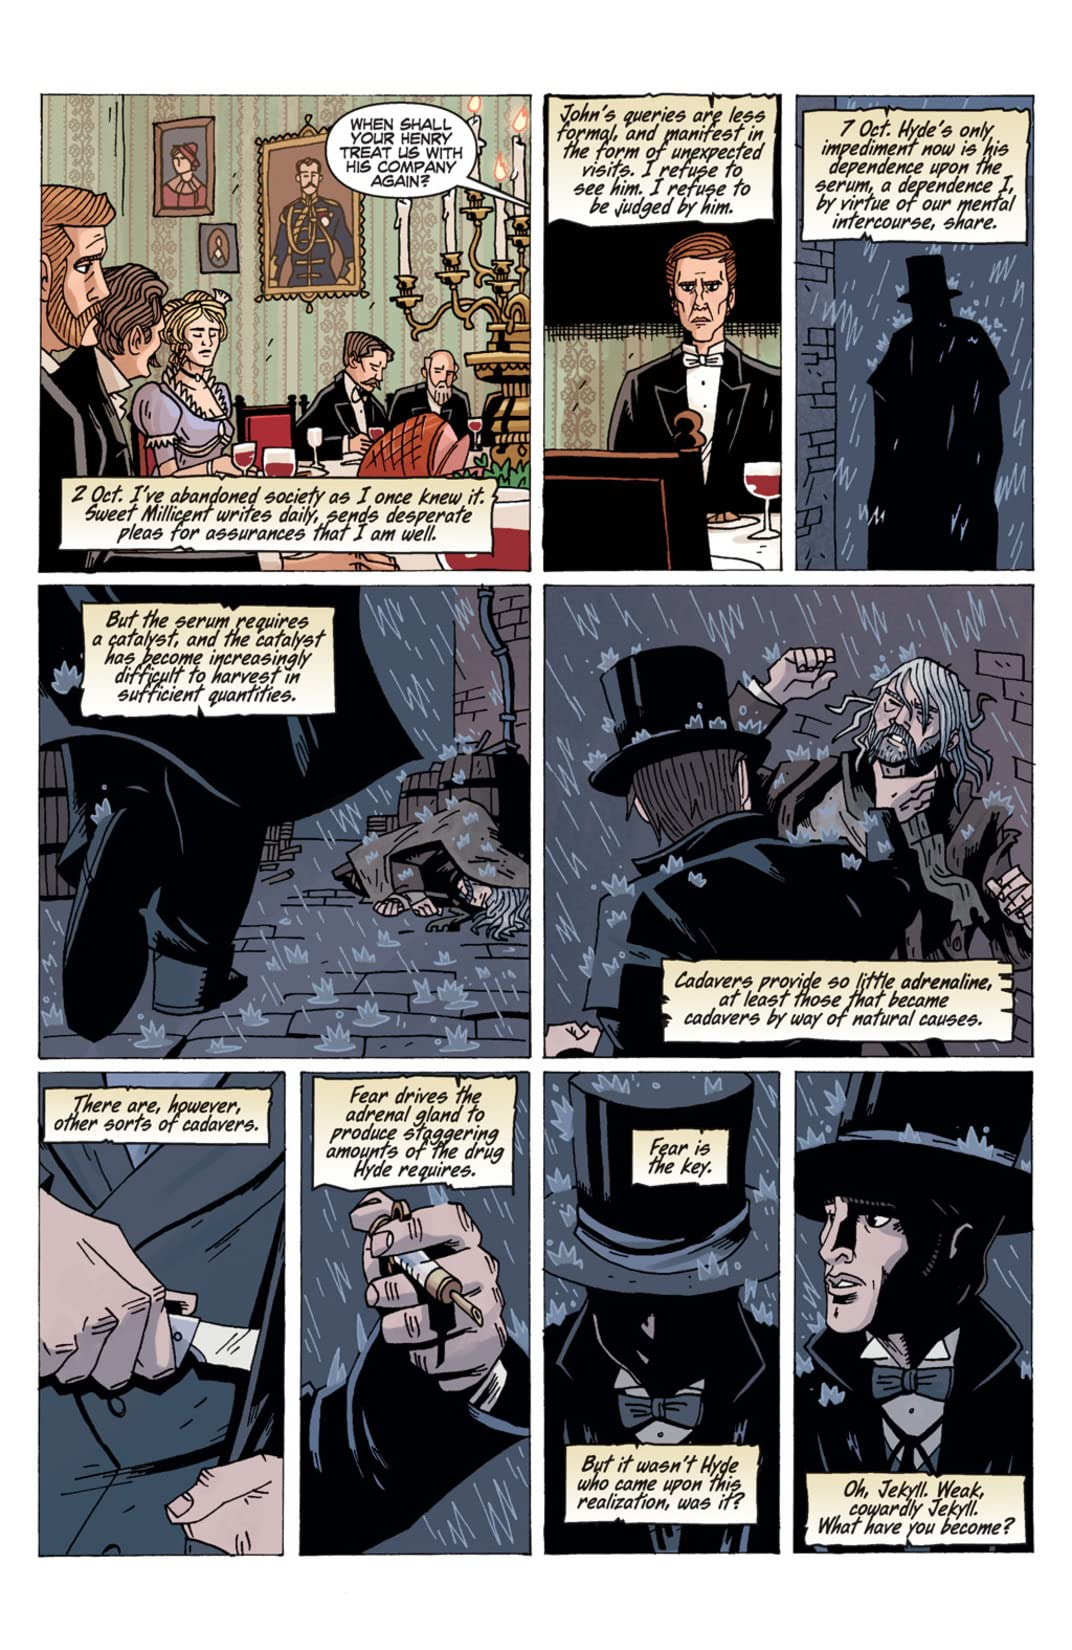 The Strange Case of Mr. Hyde #2